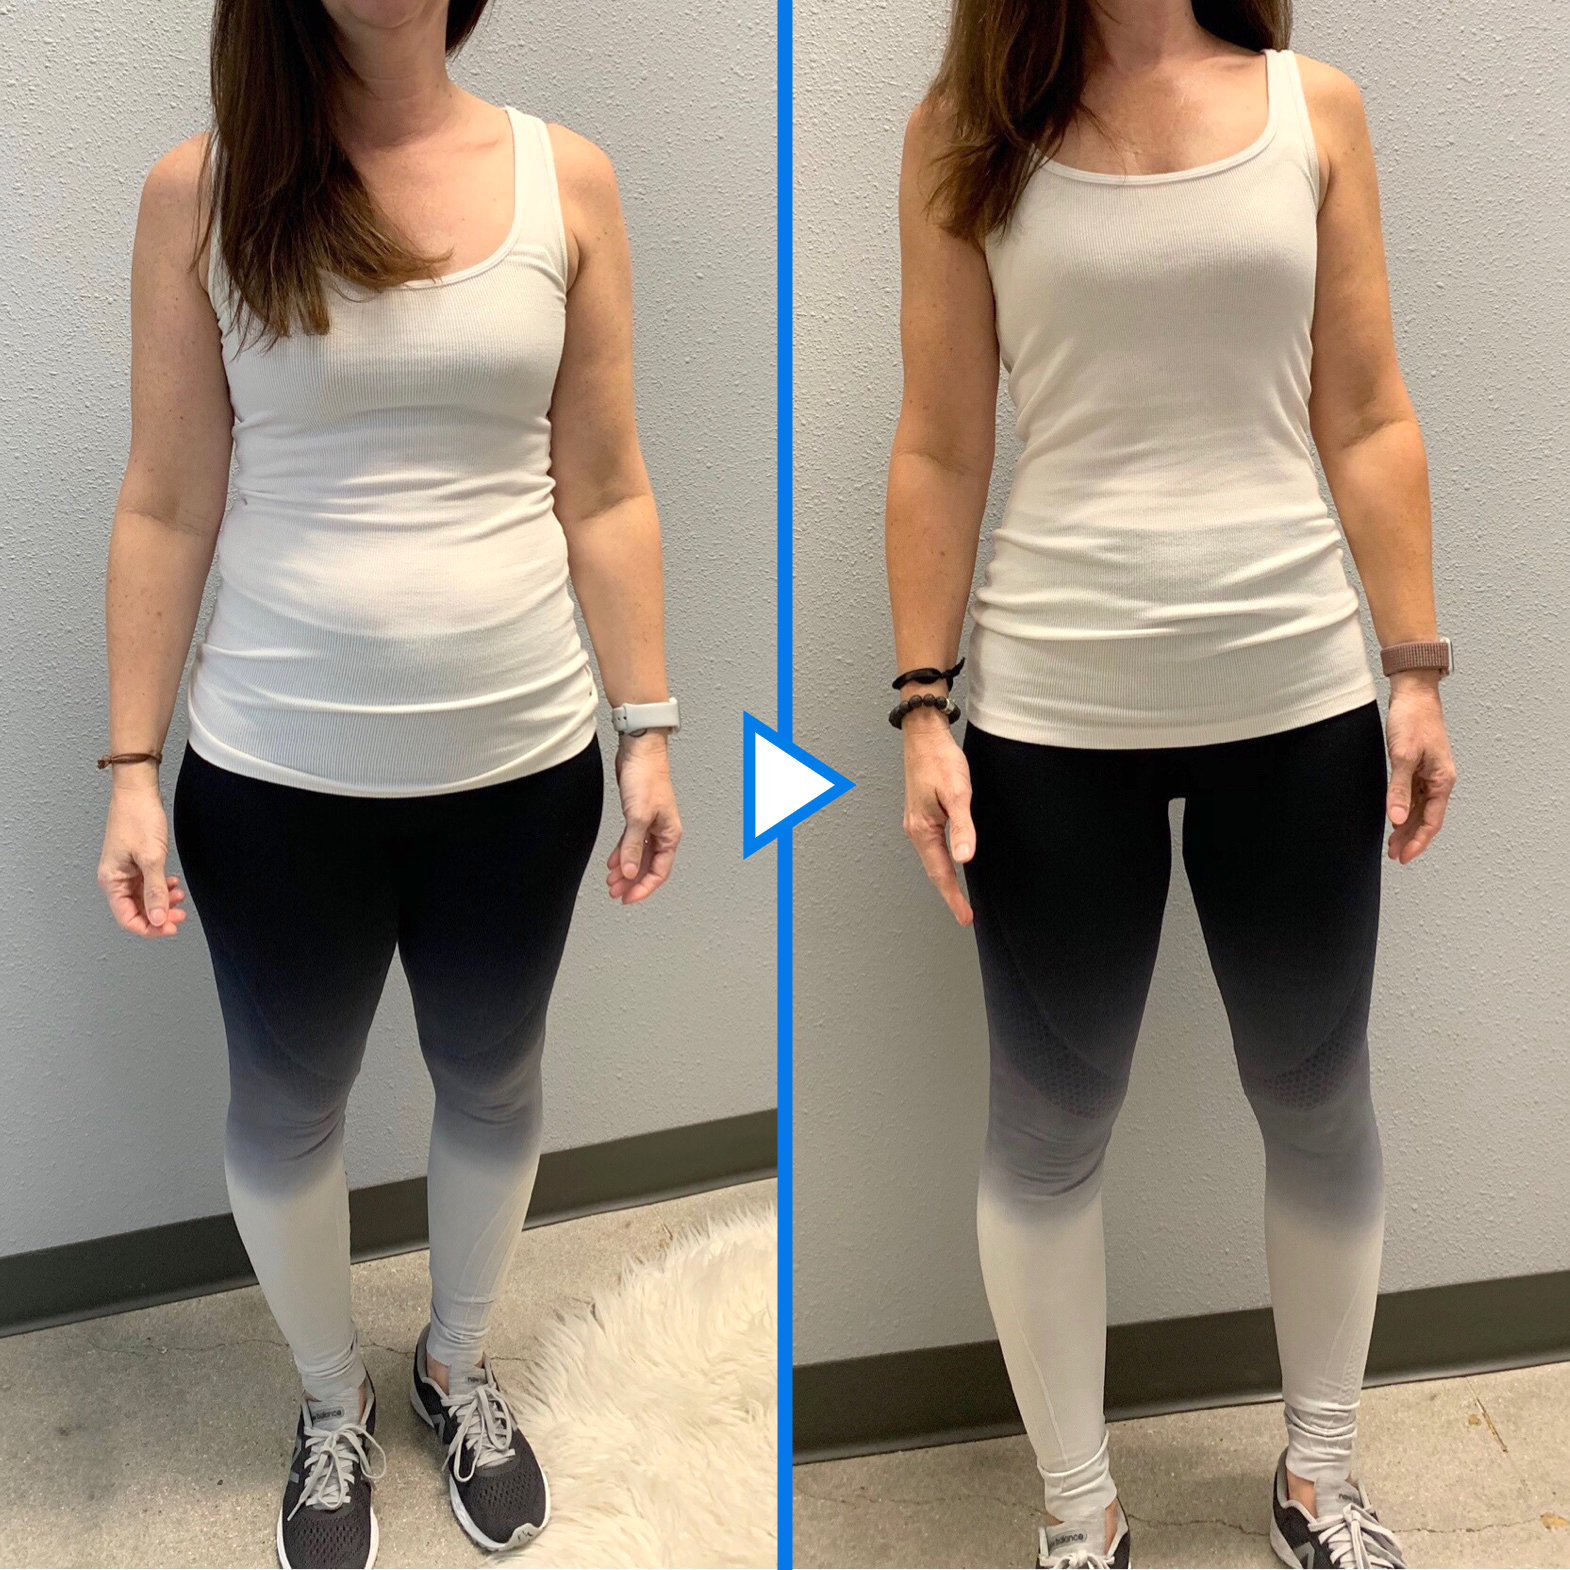 Frisco Nutrition Before & After